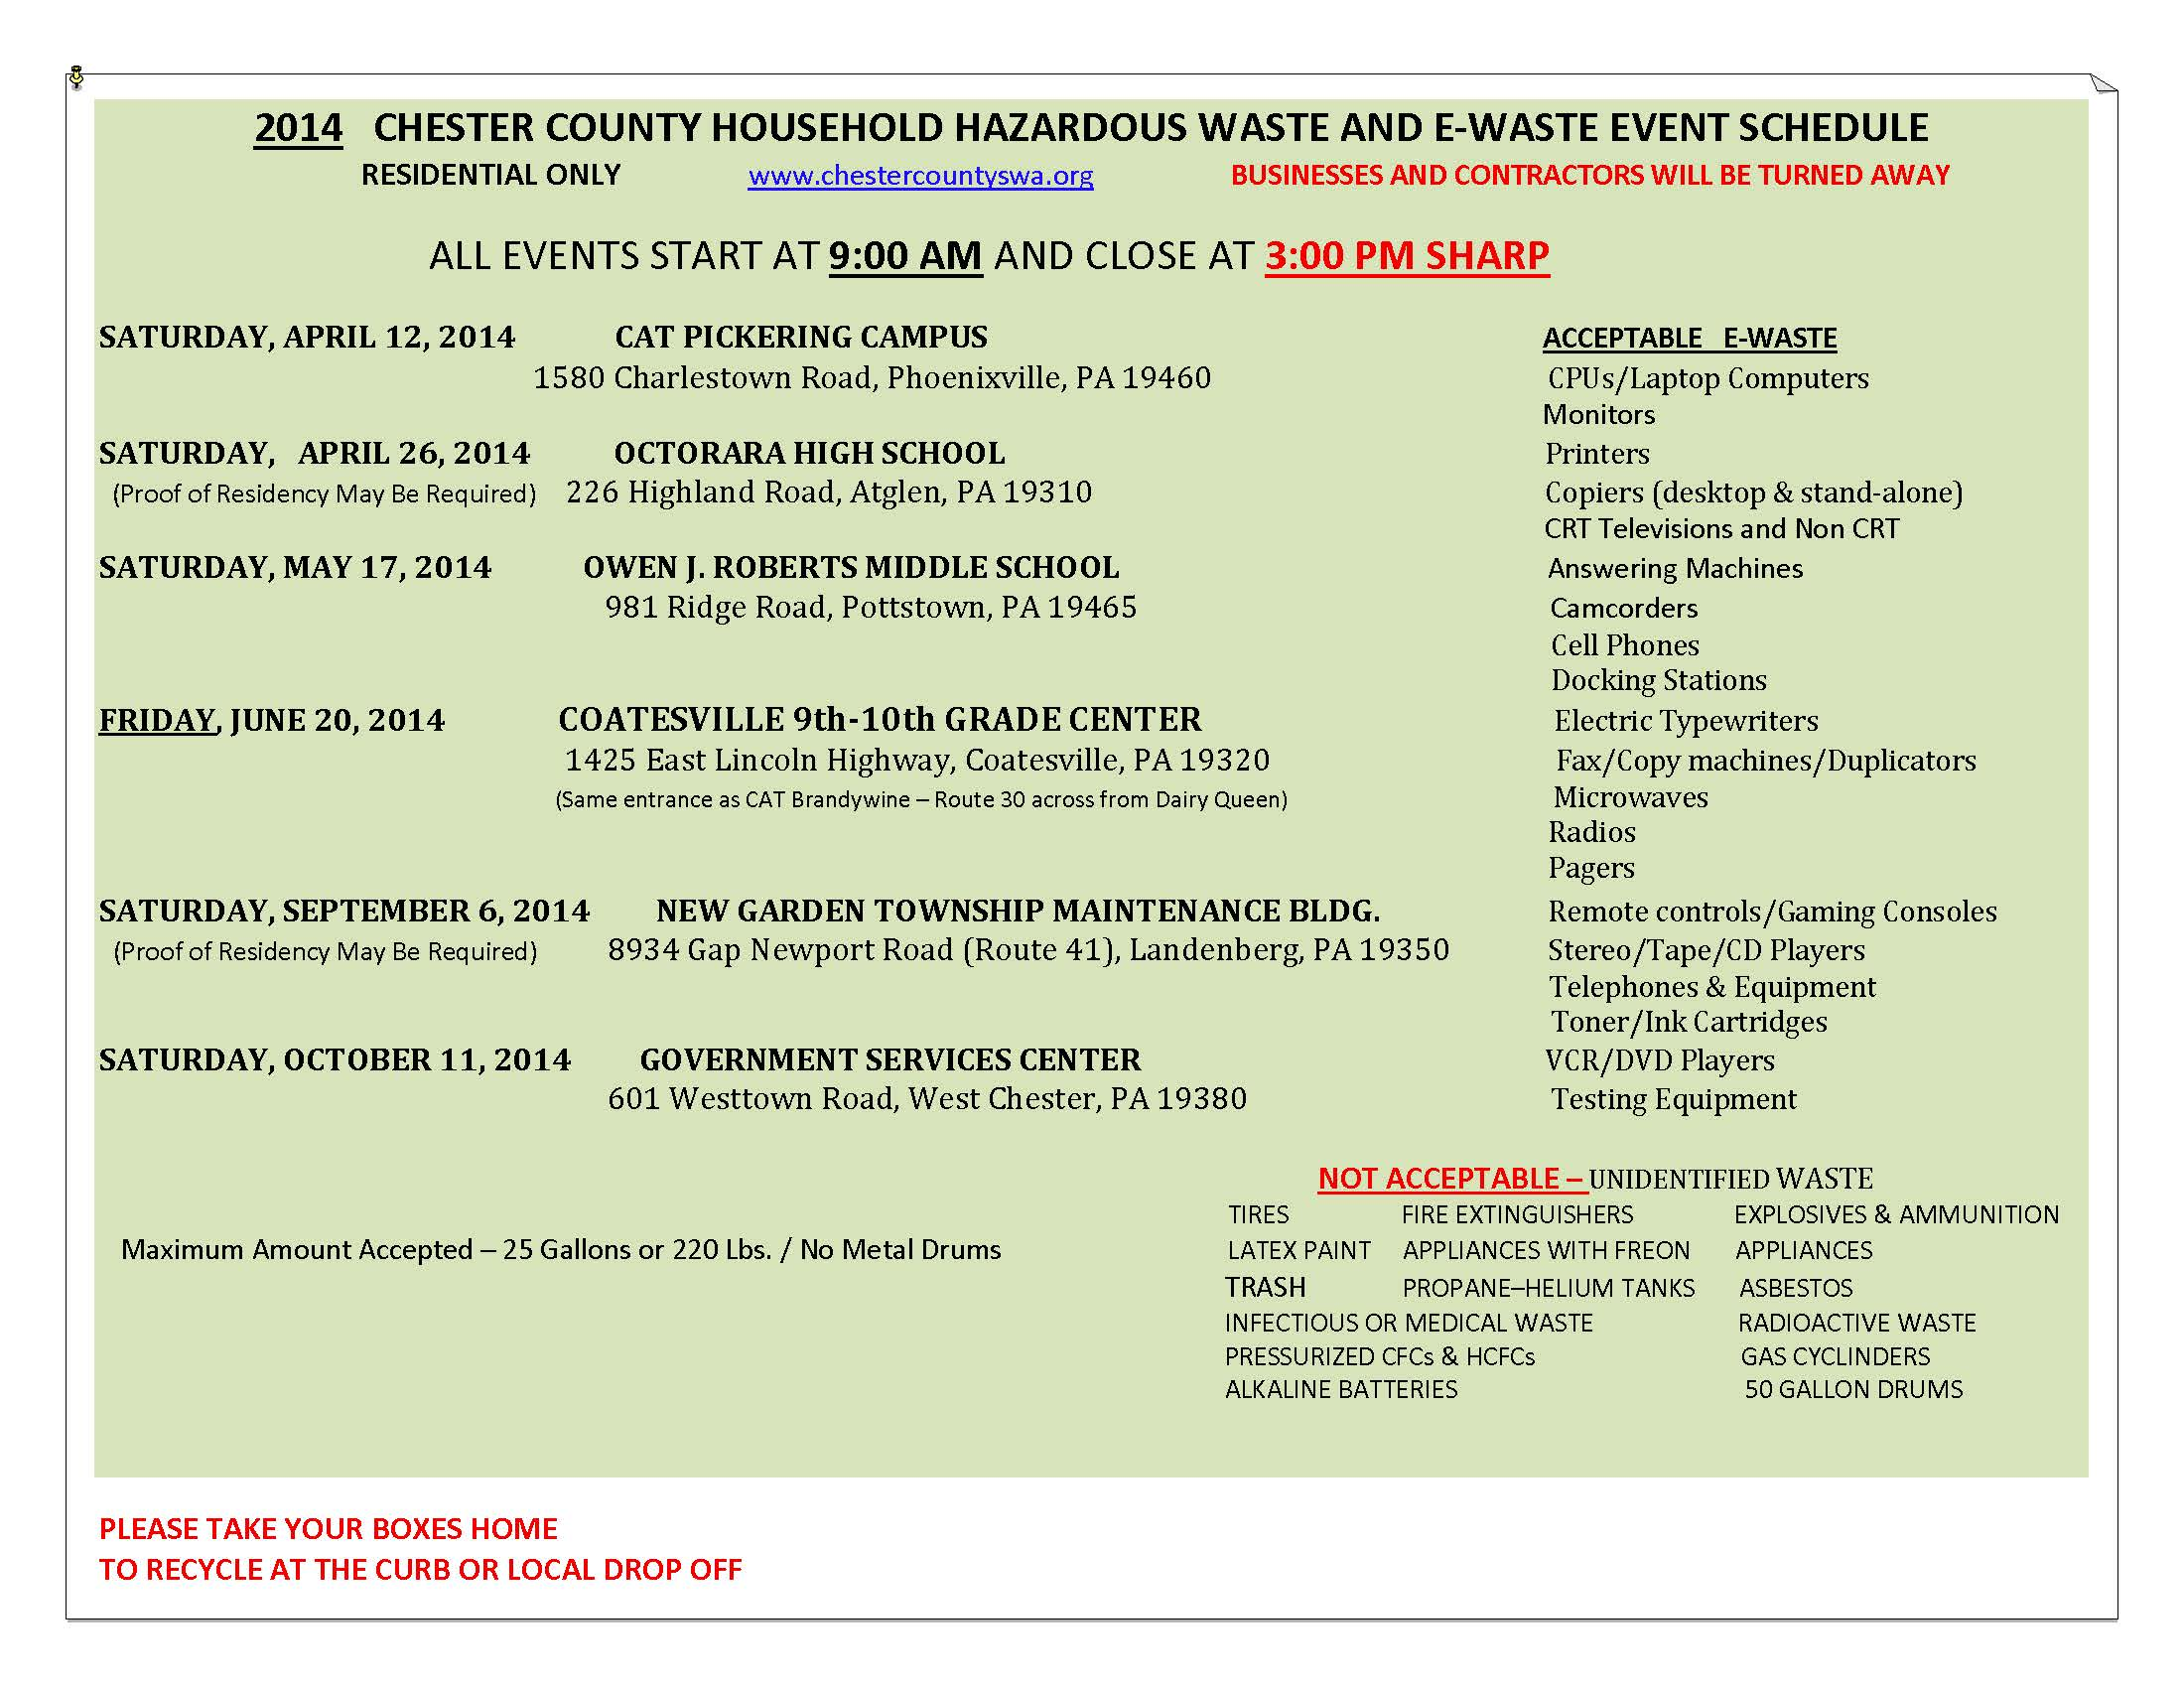 2014 HHW Event Schedule for Chester County